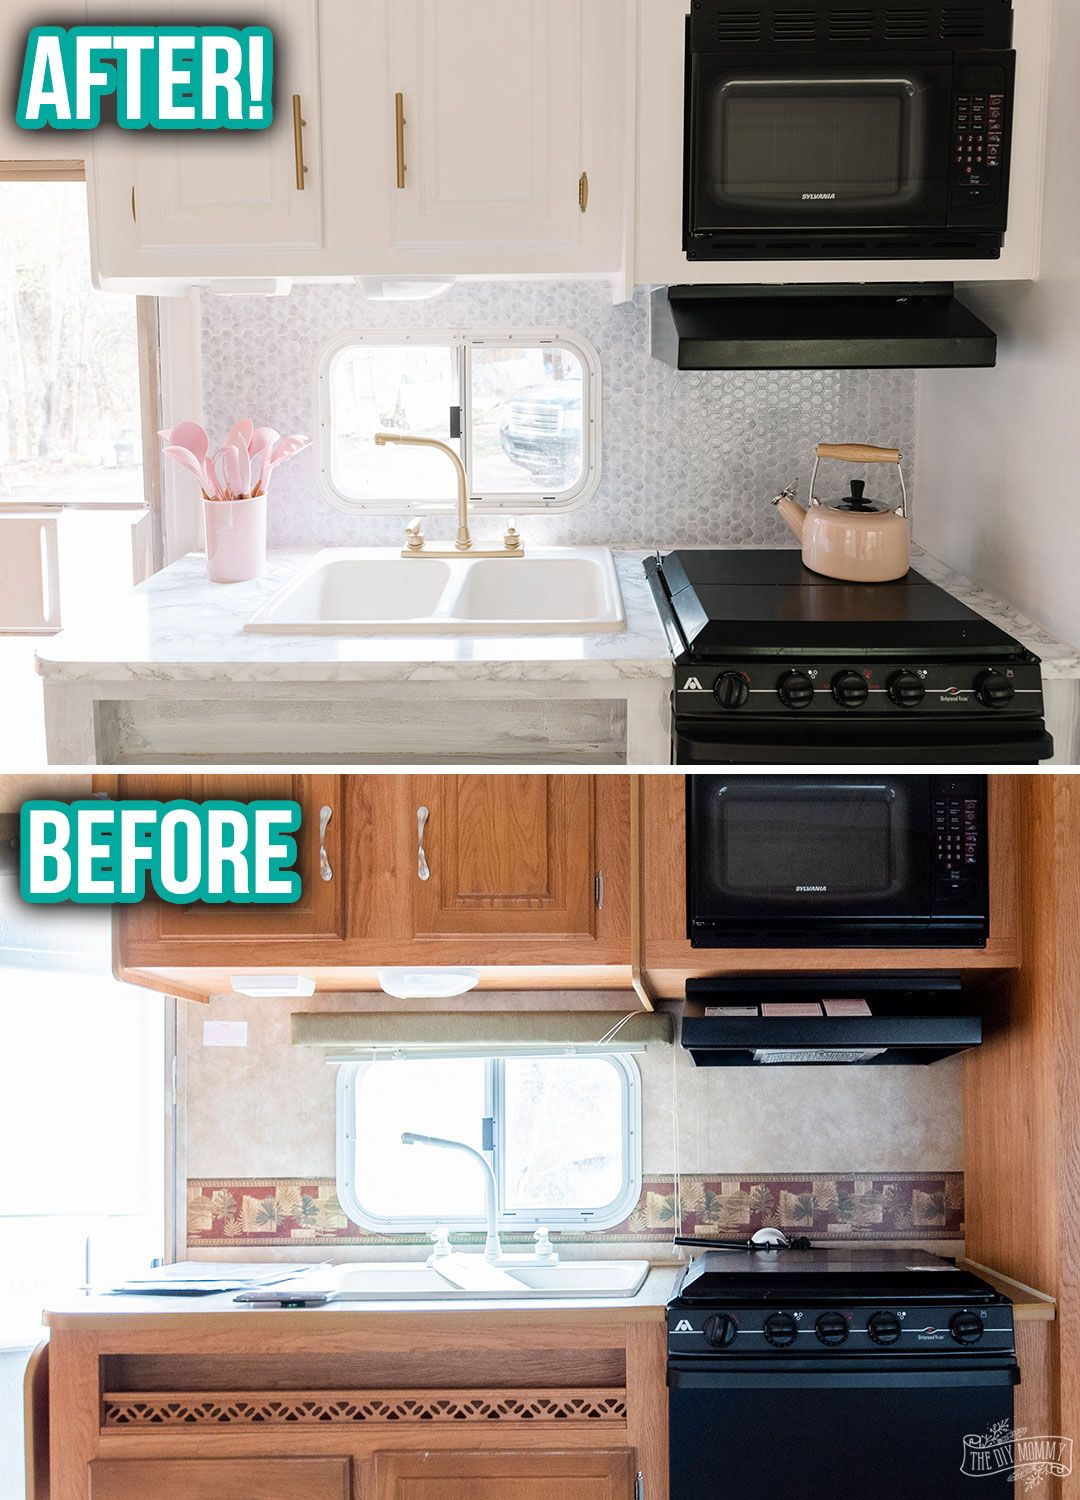 Kitchen Counter Area Makeover With Peel Stick Tile Counter And Spray Paint Our Diy Camper 2 0 The Diy Mommy Stick On Tiles Peel And Stick Tile Contact Paper Countertop